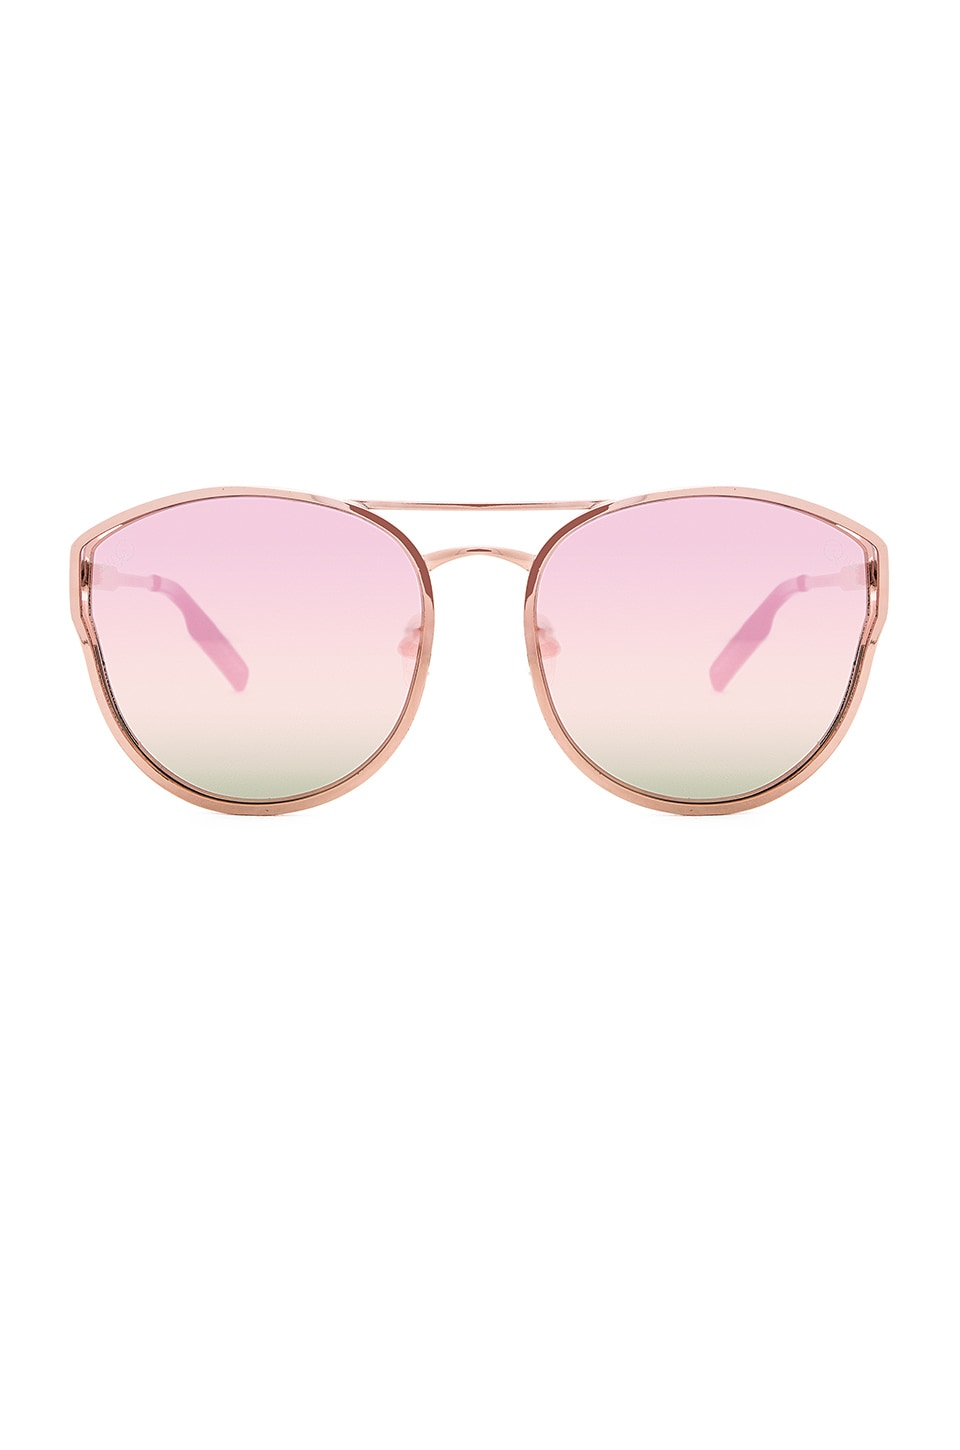 Quay Cherry Bomb Sunglasses in Rose Gold